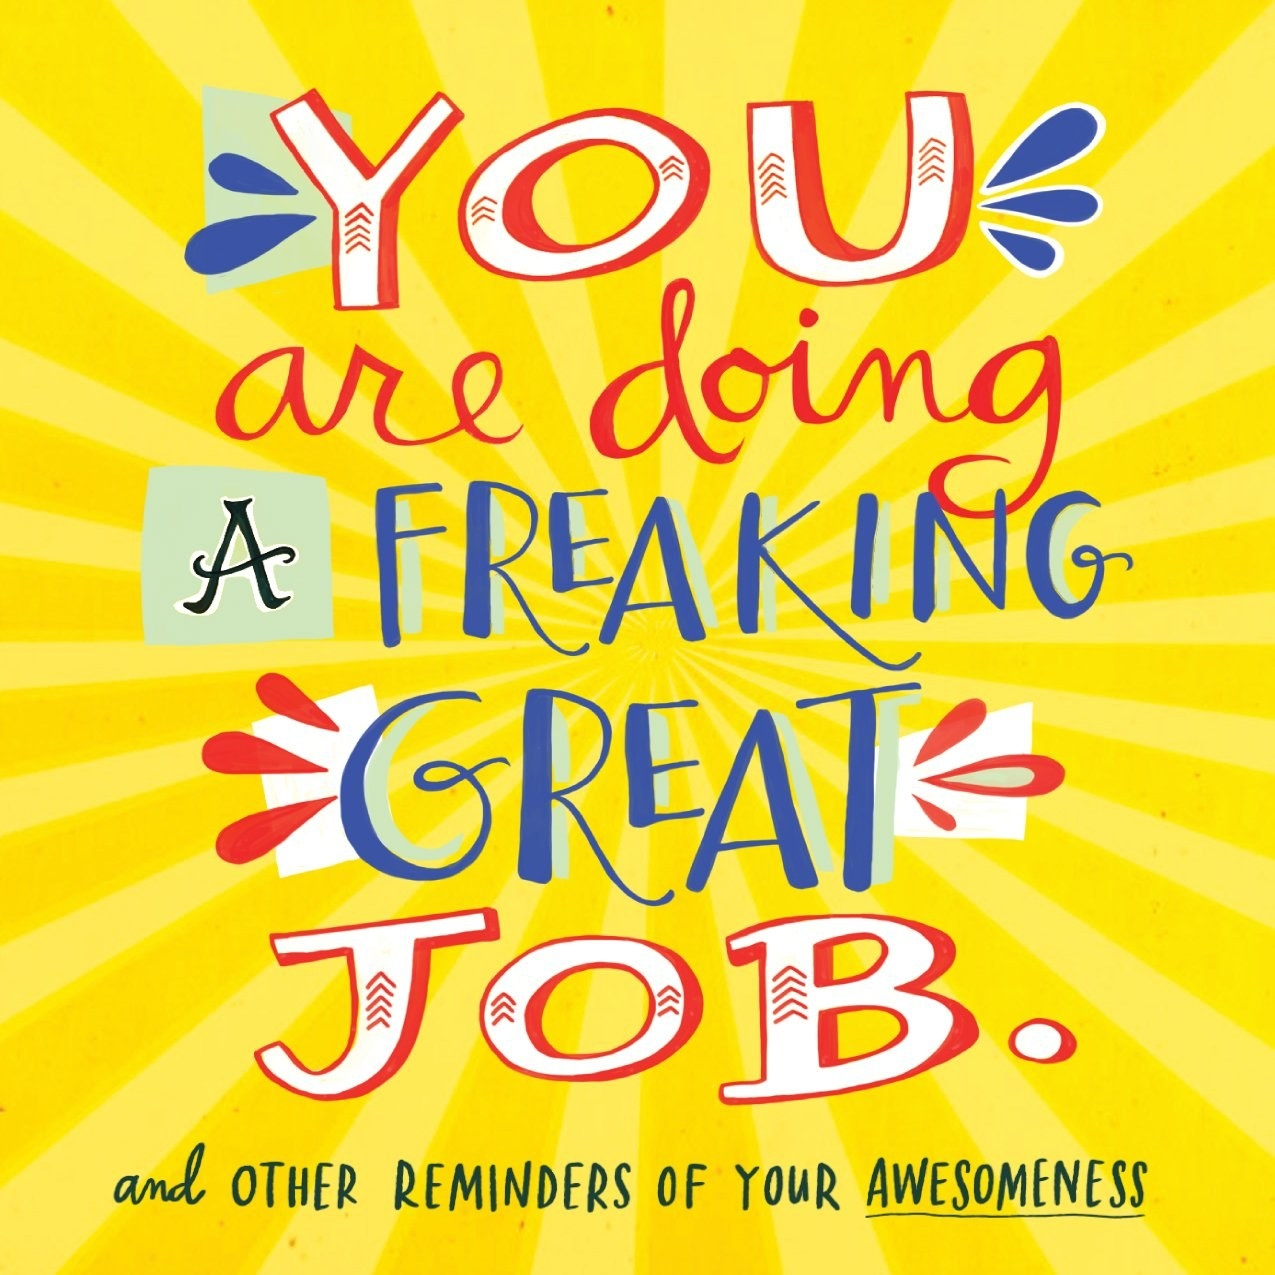 The cover of You Are Doing a Freaking Great Job.: And Other Reminders of Your Awesomeness